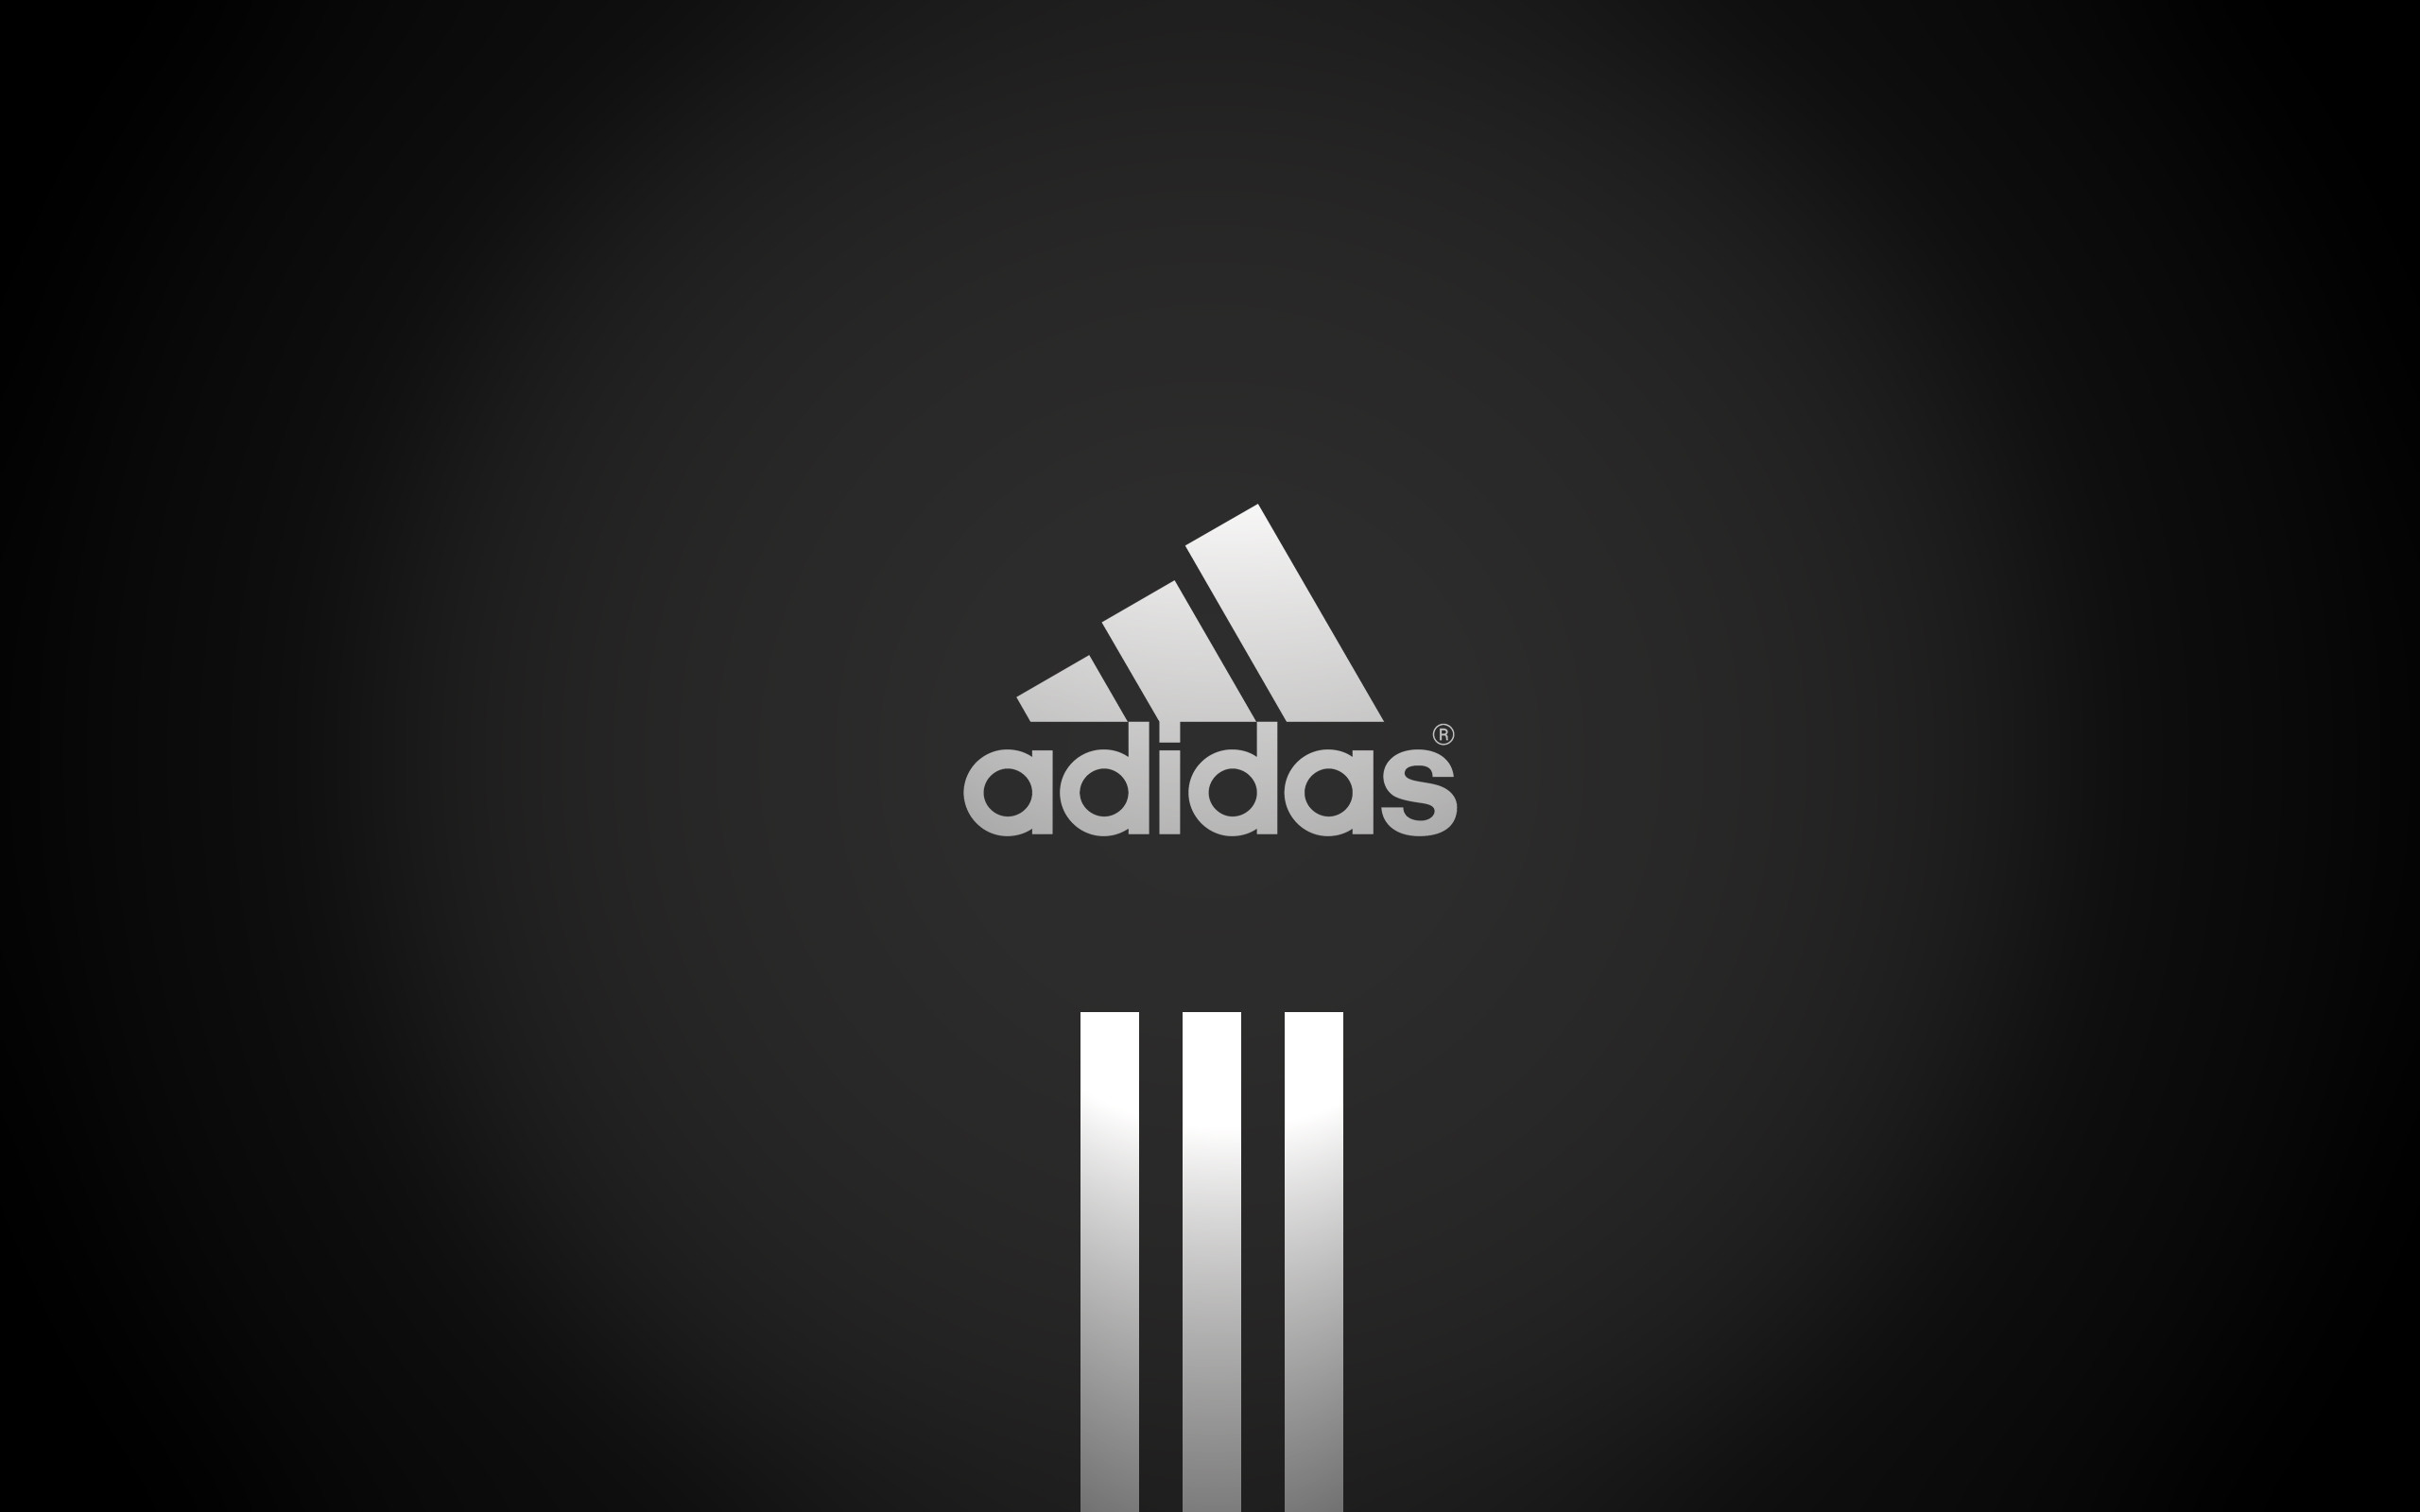 2560x1600 New HD Adidas Logo Wallpaper